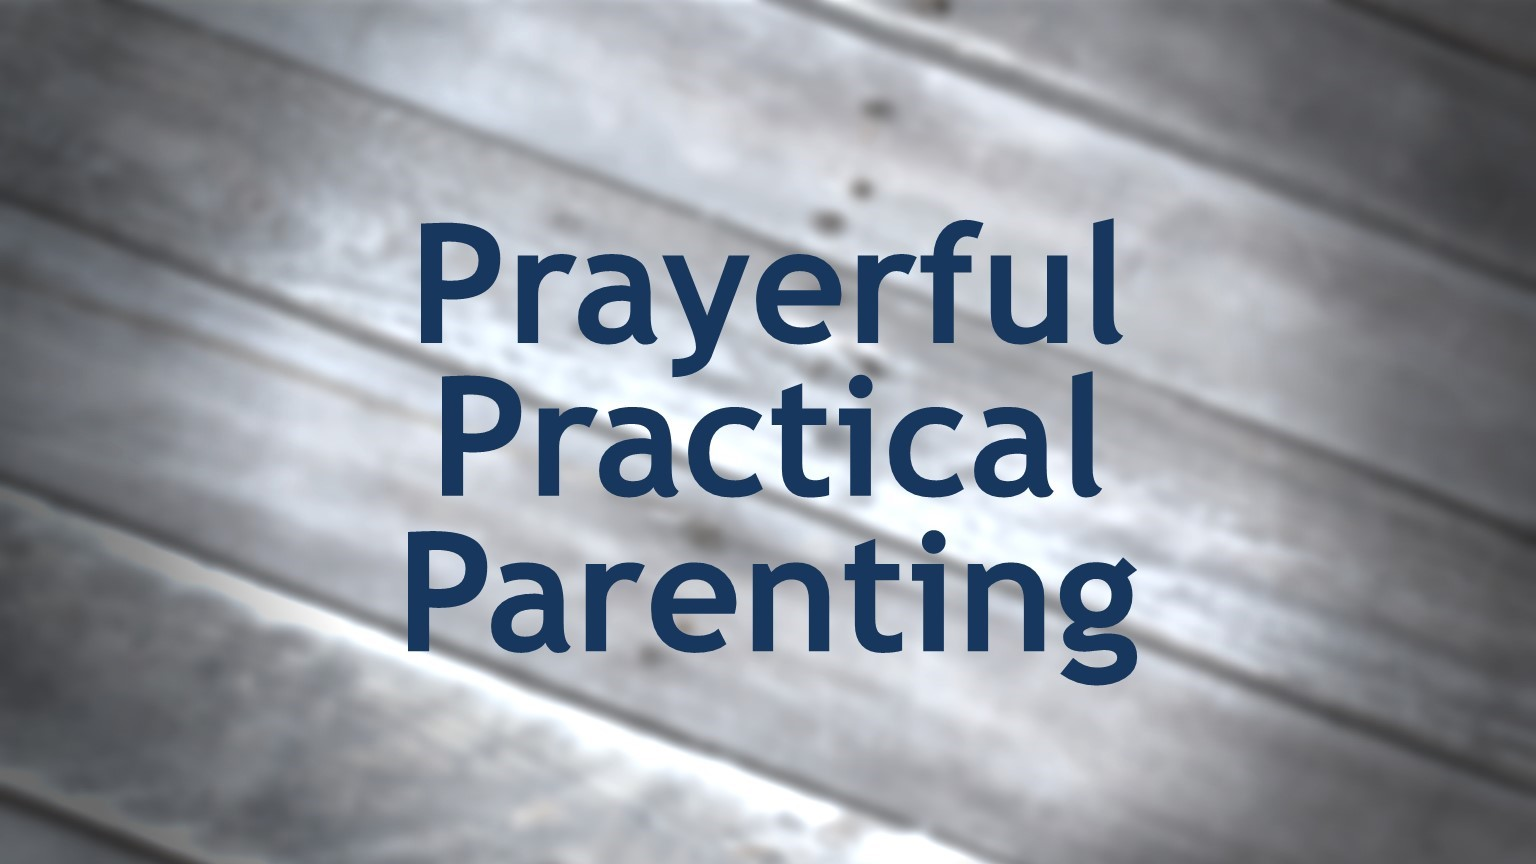 PRAYERFUL, PRACTICAL PARENTING 10